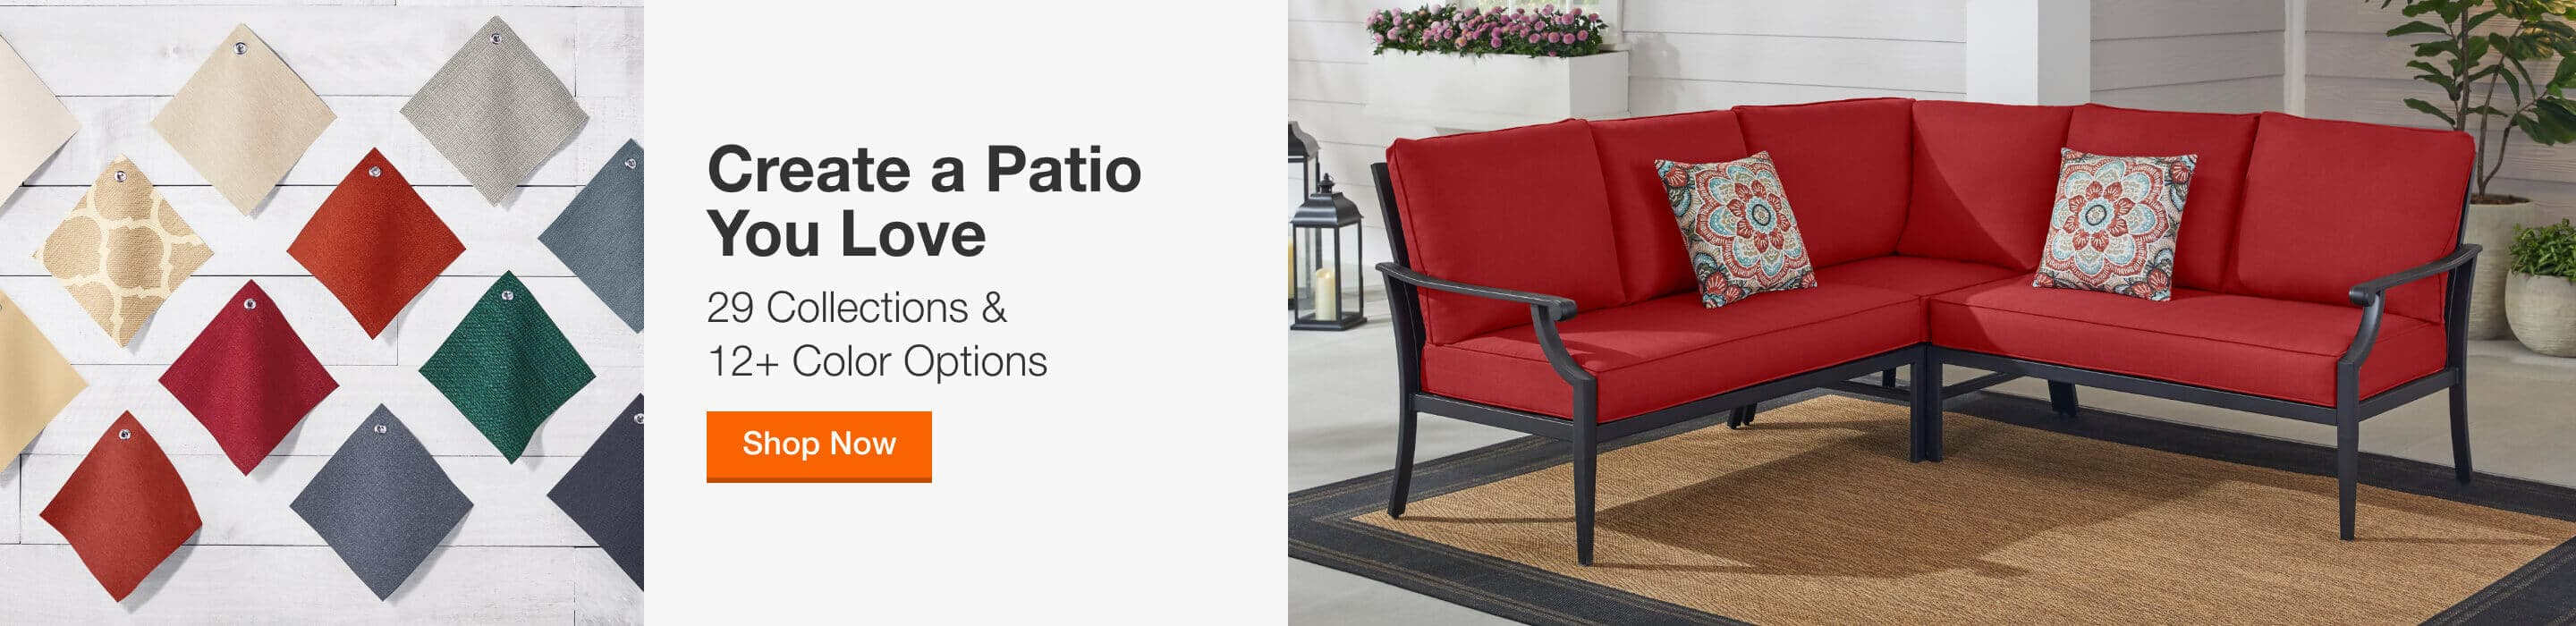 CREATE A PATIO YOU LOVE - 29 Collections & 12+ Color Options. Shop Now